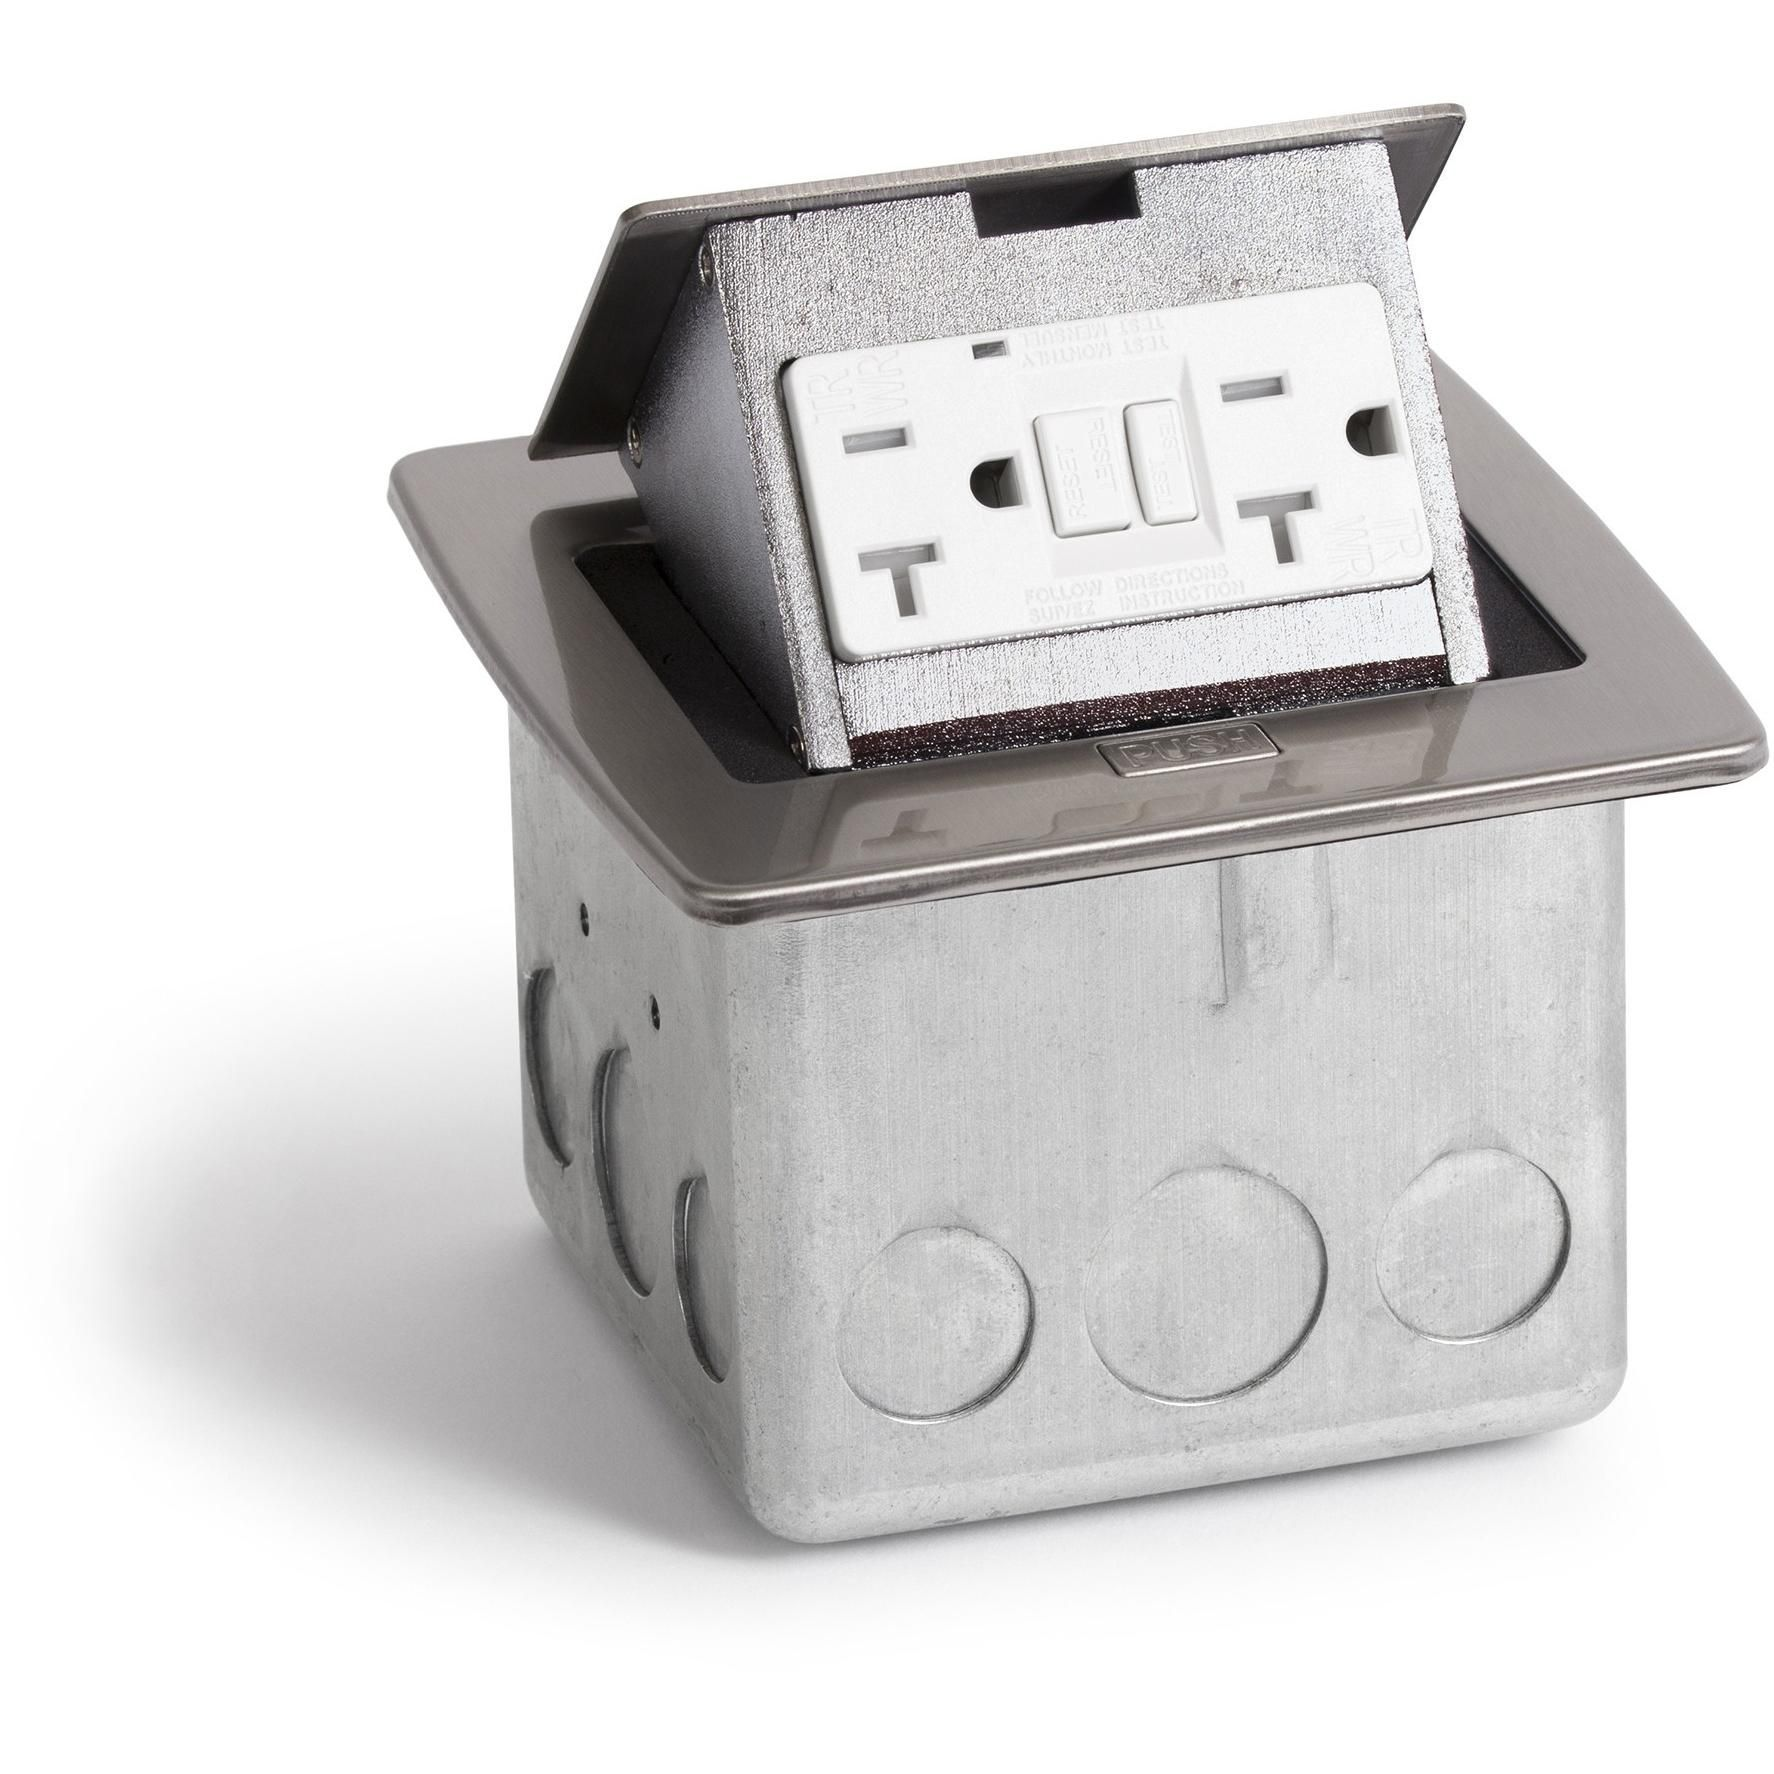 Kitchen Countertop Pop Up 20A GFI Protected Power Outlet, Stainless ...